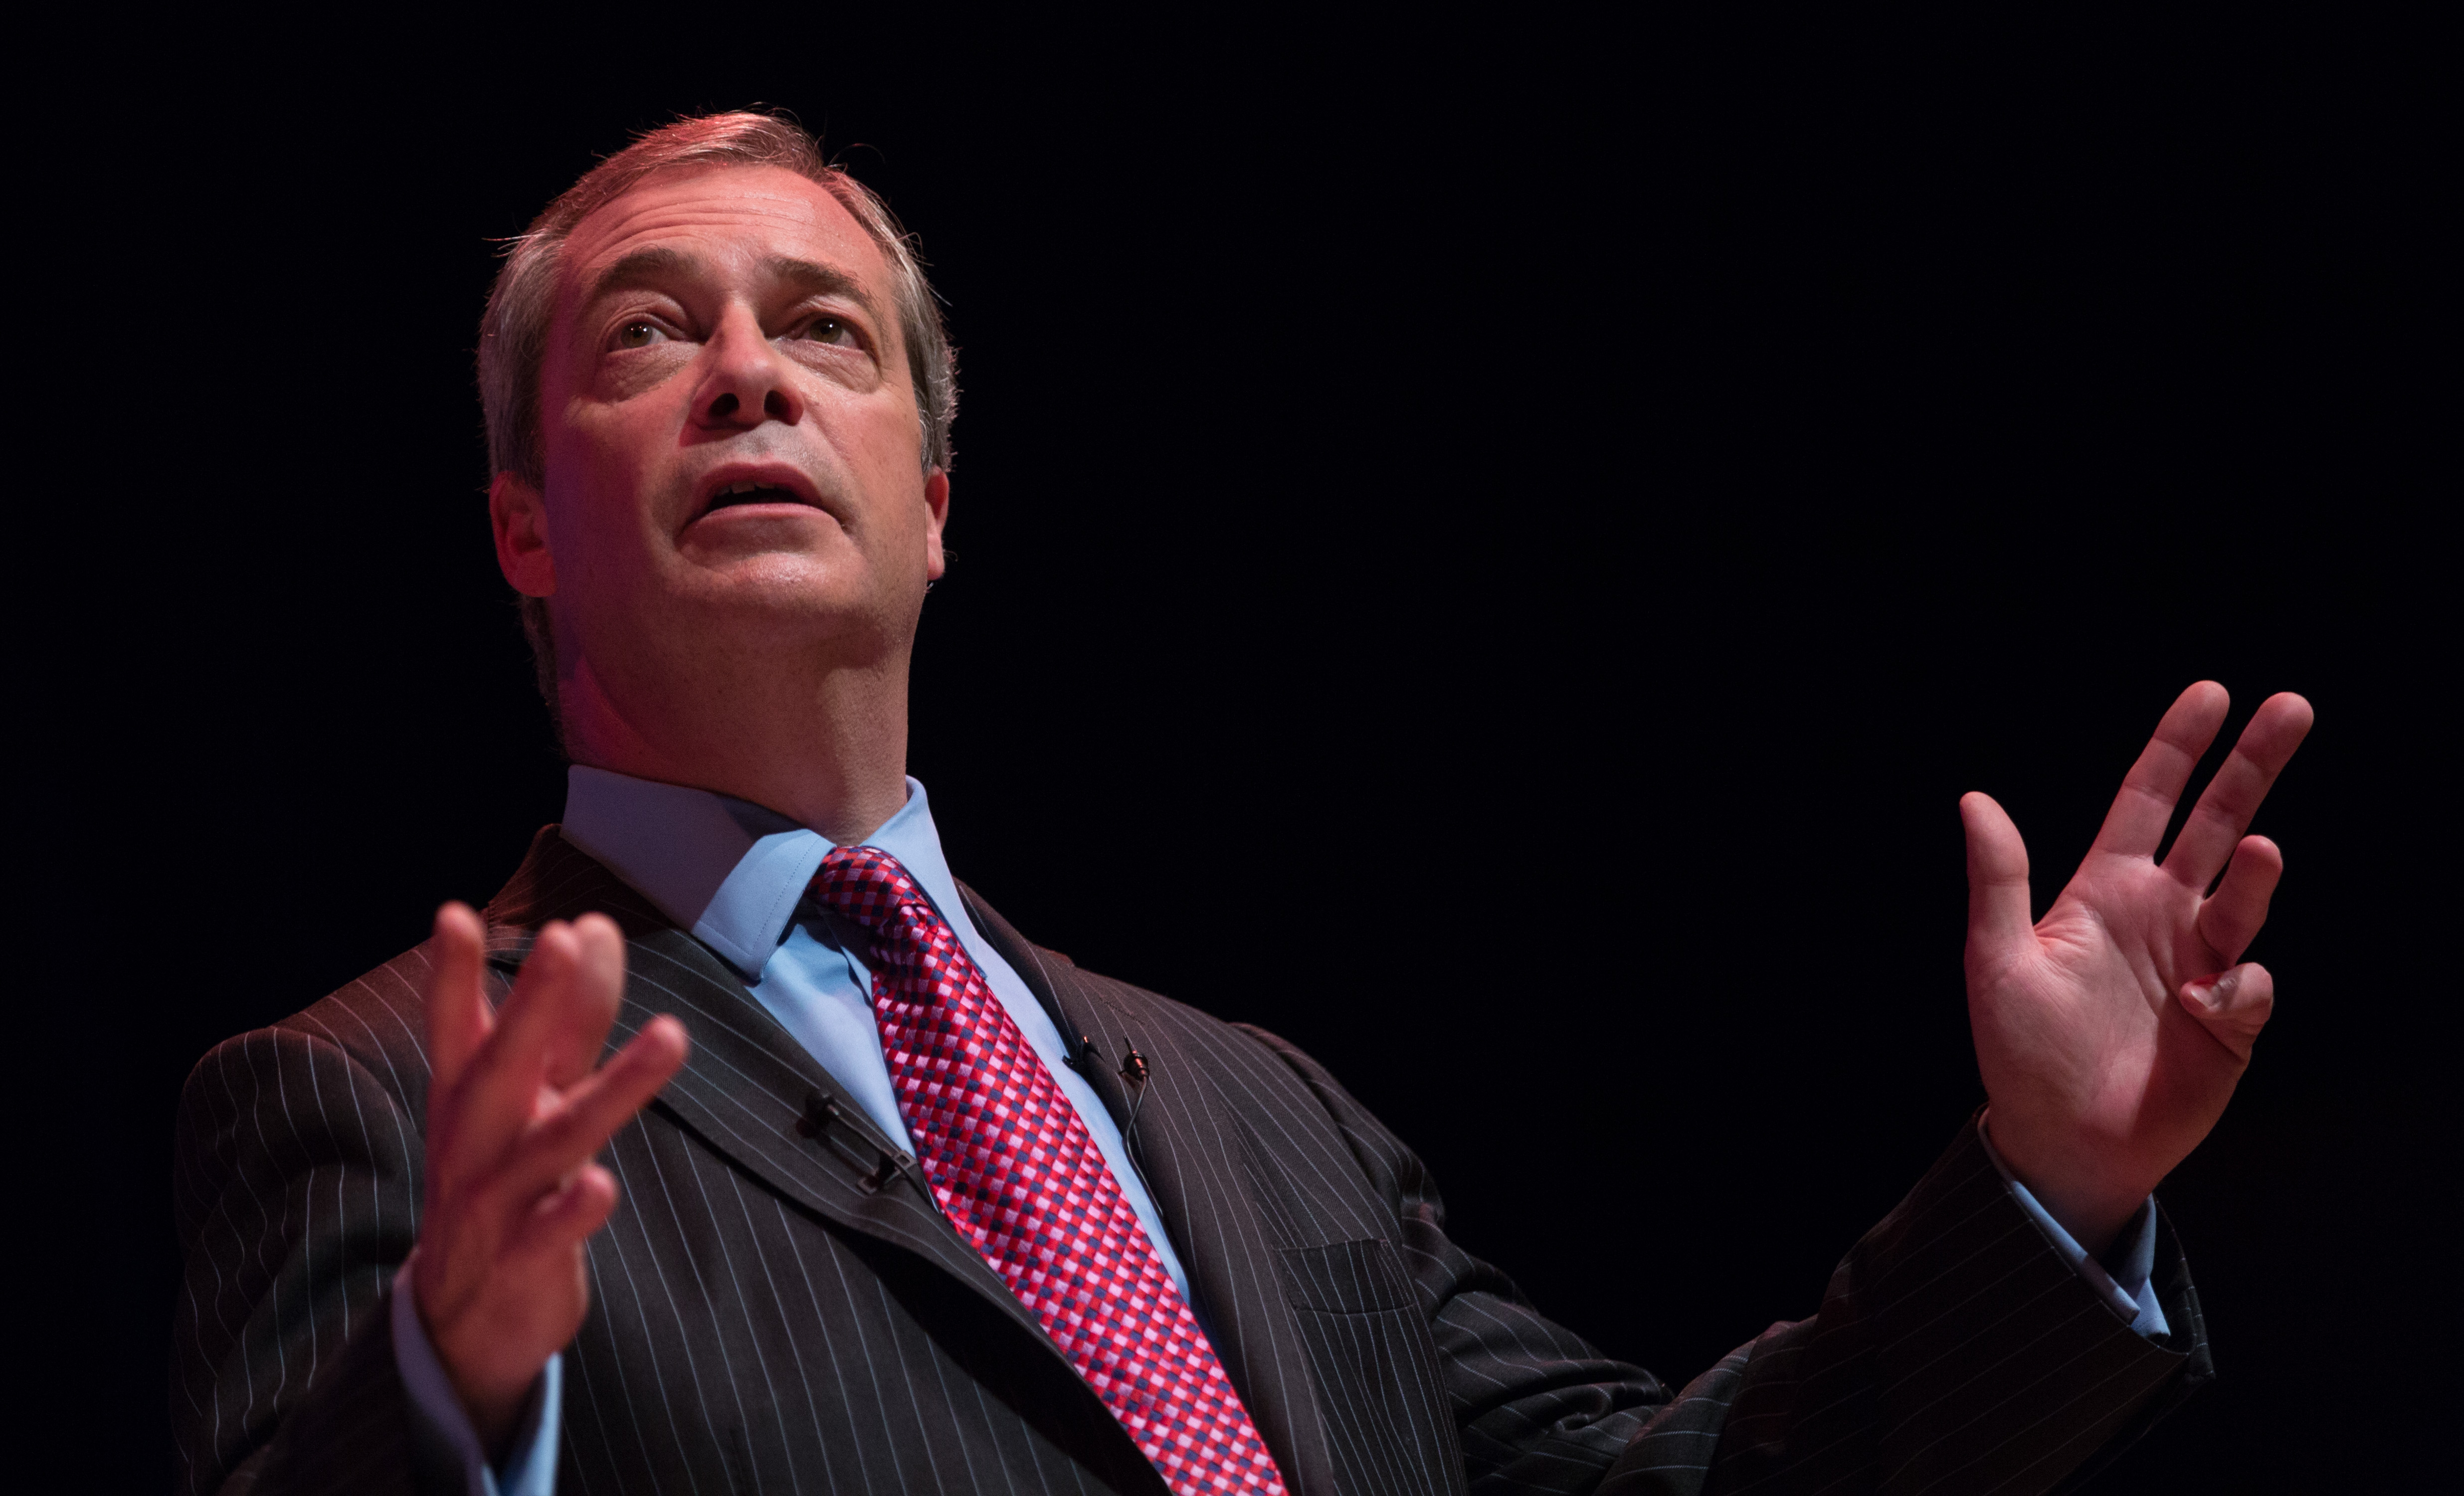 """UKIP leader Nigel Farage addresses supporters at a """"Say No to Europe"""" meeting at the Anvil in Basingstoke, England, on Nov. 16, 2015. The right-wing Euroskeptic supports the British exit from the European Union. (Matt Cardy/Getty Images)"""